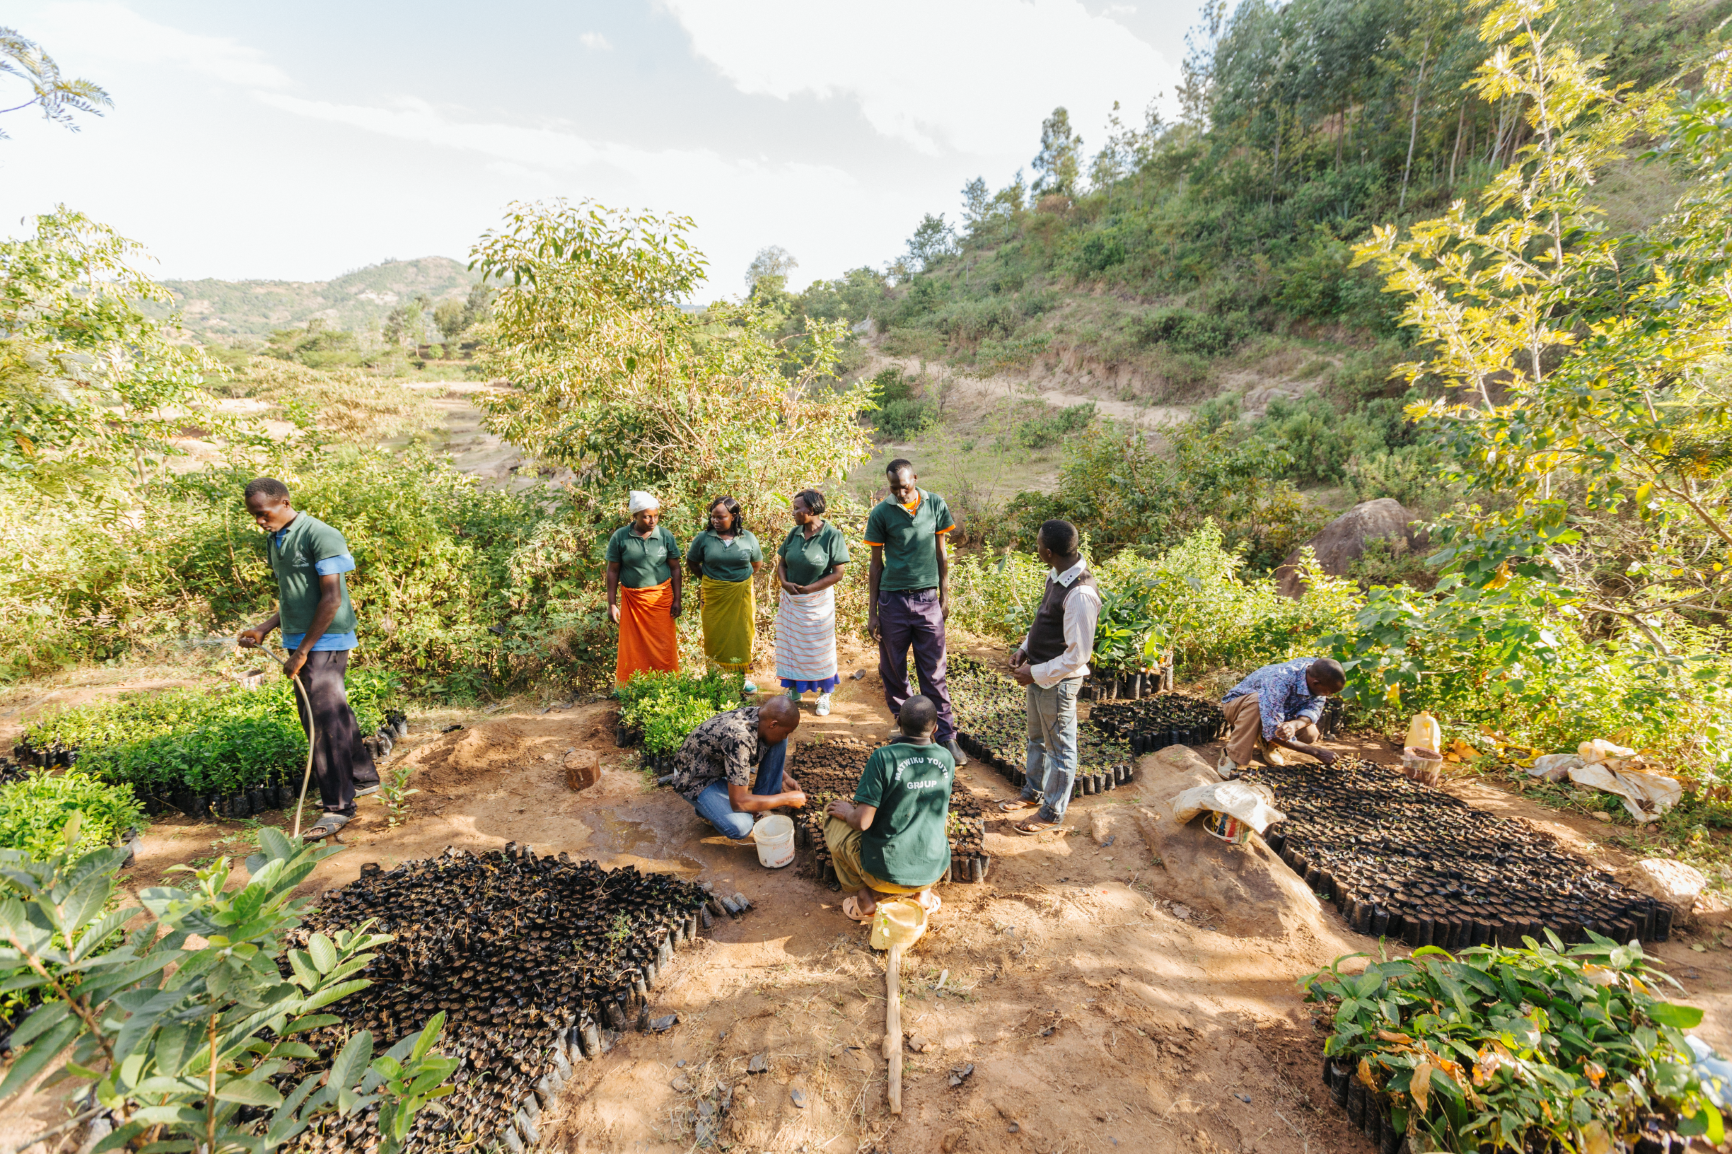 <p>Youth groups are growing trees in Kenya\'s Makueni County to protect and restore the landscape. Photo by Peter Irungu/WRI</p>